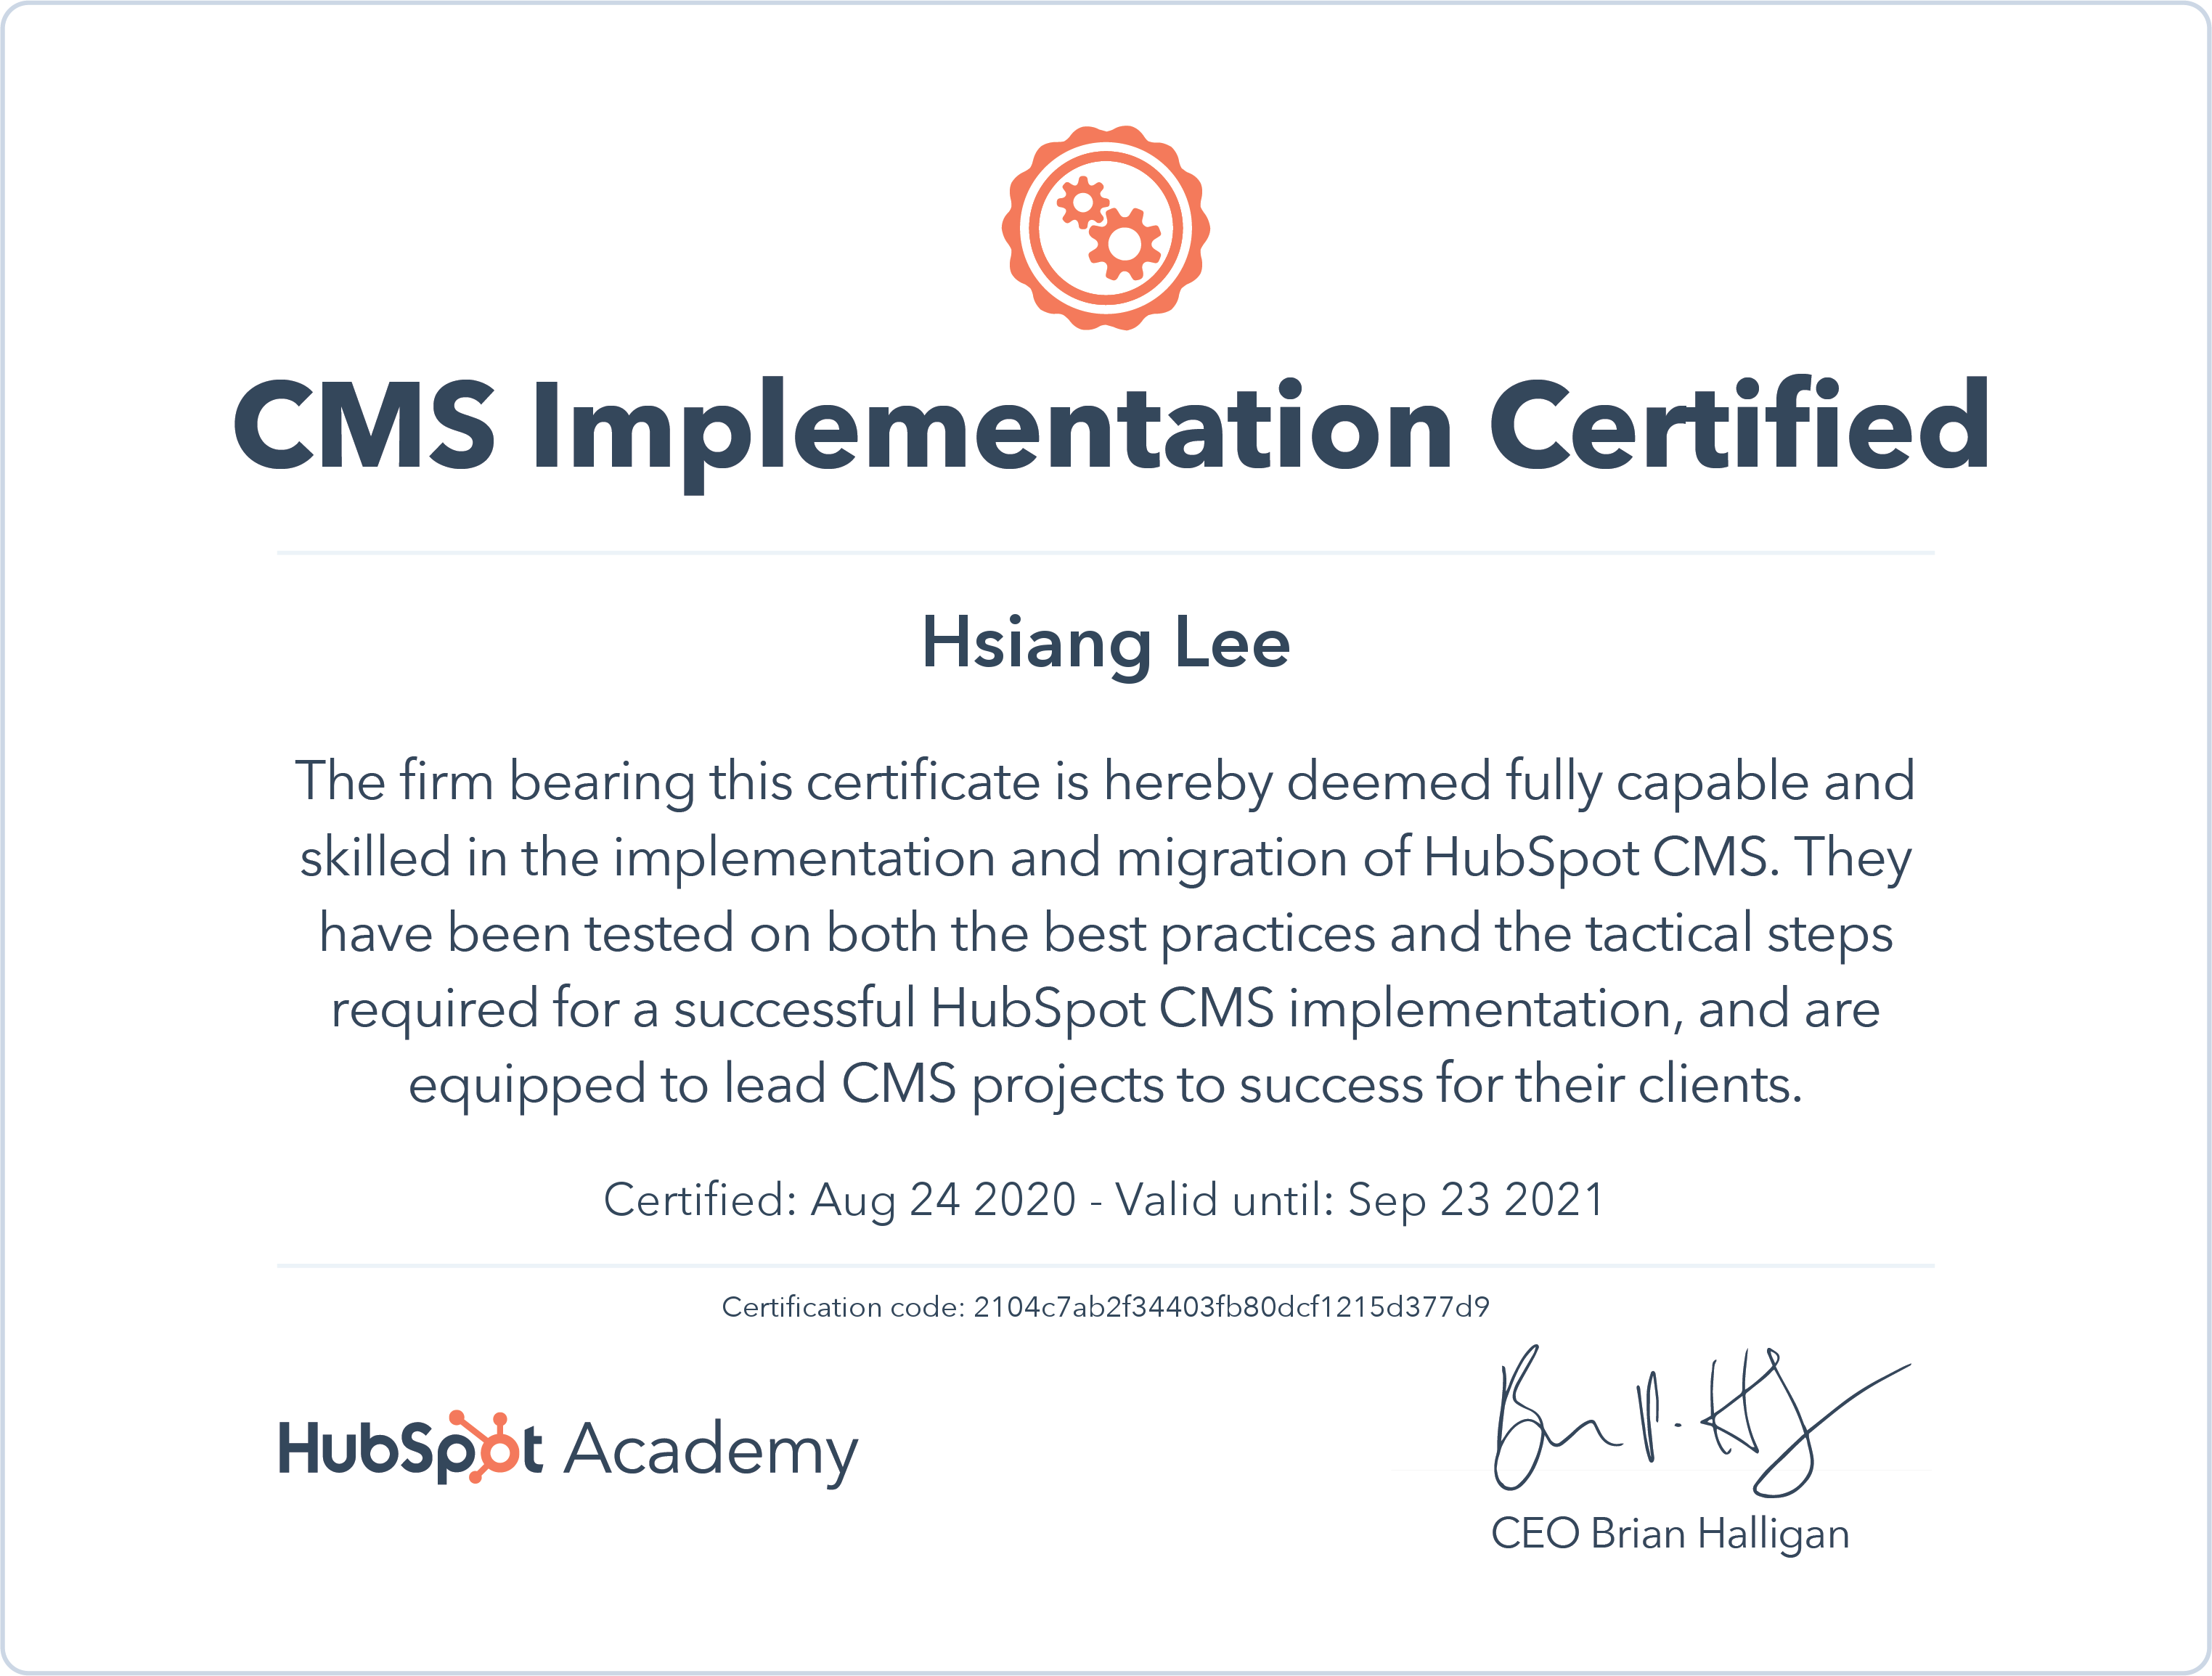 cms-implementation-certified_hsiang